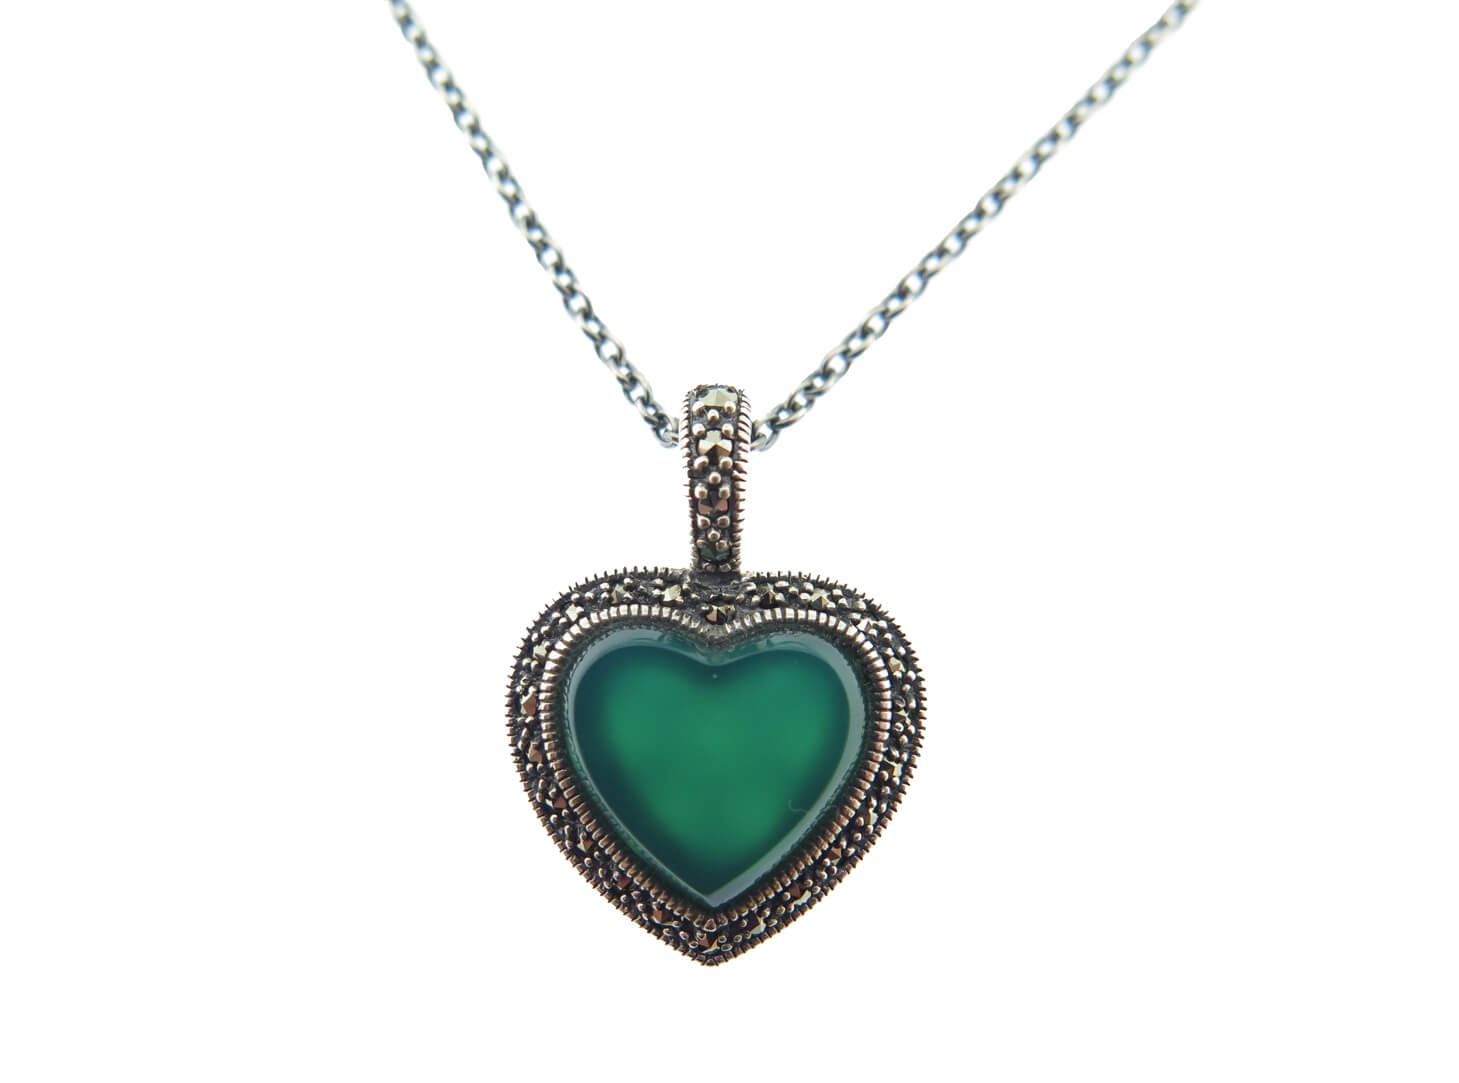 Dyed Green Chalcedony Necklace MJ18775